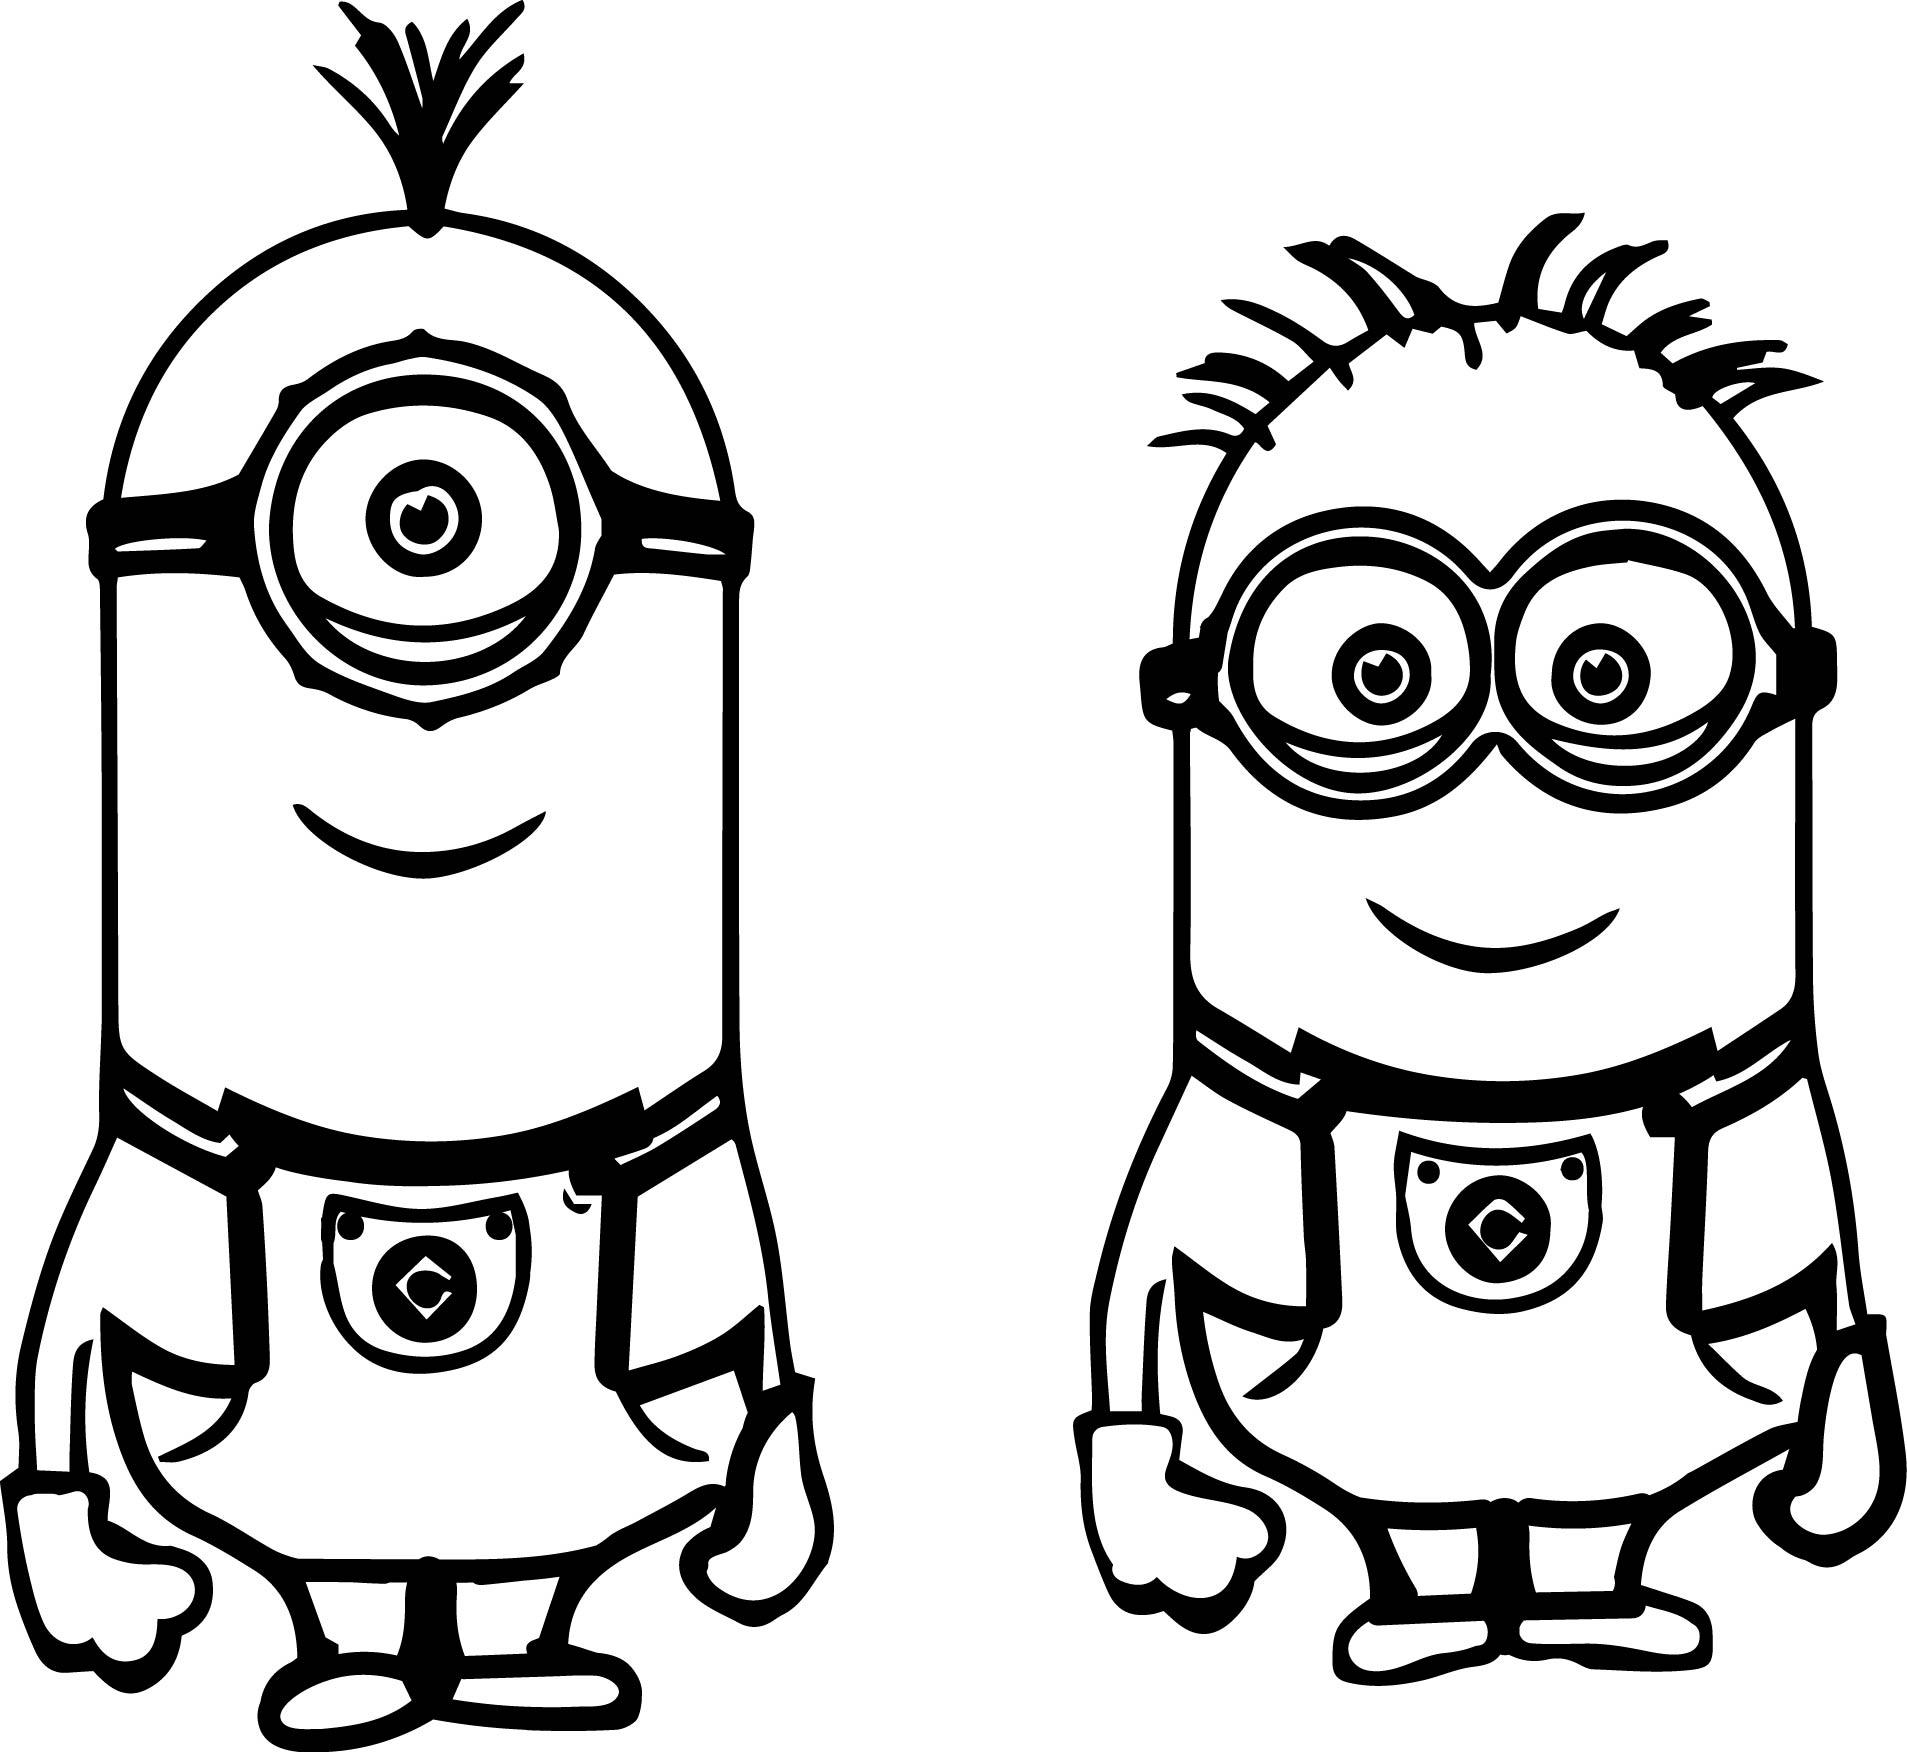 coloring minion pages to print minion coloring pages from despicable me for free coloring pages minion